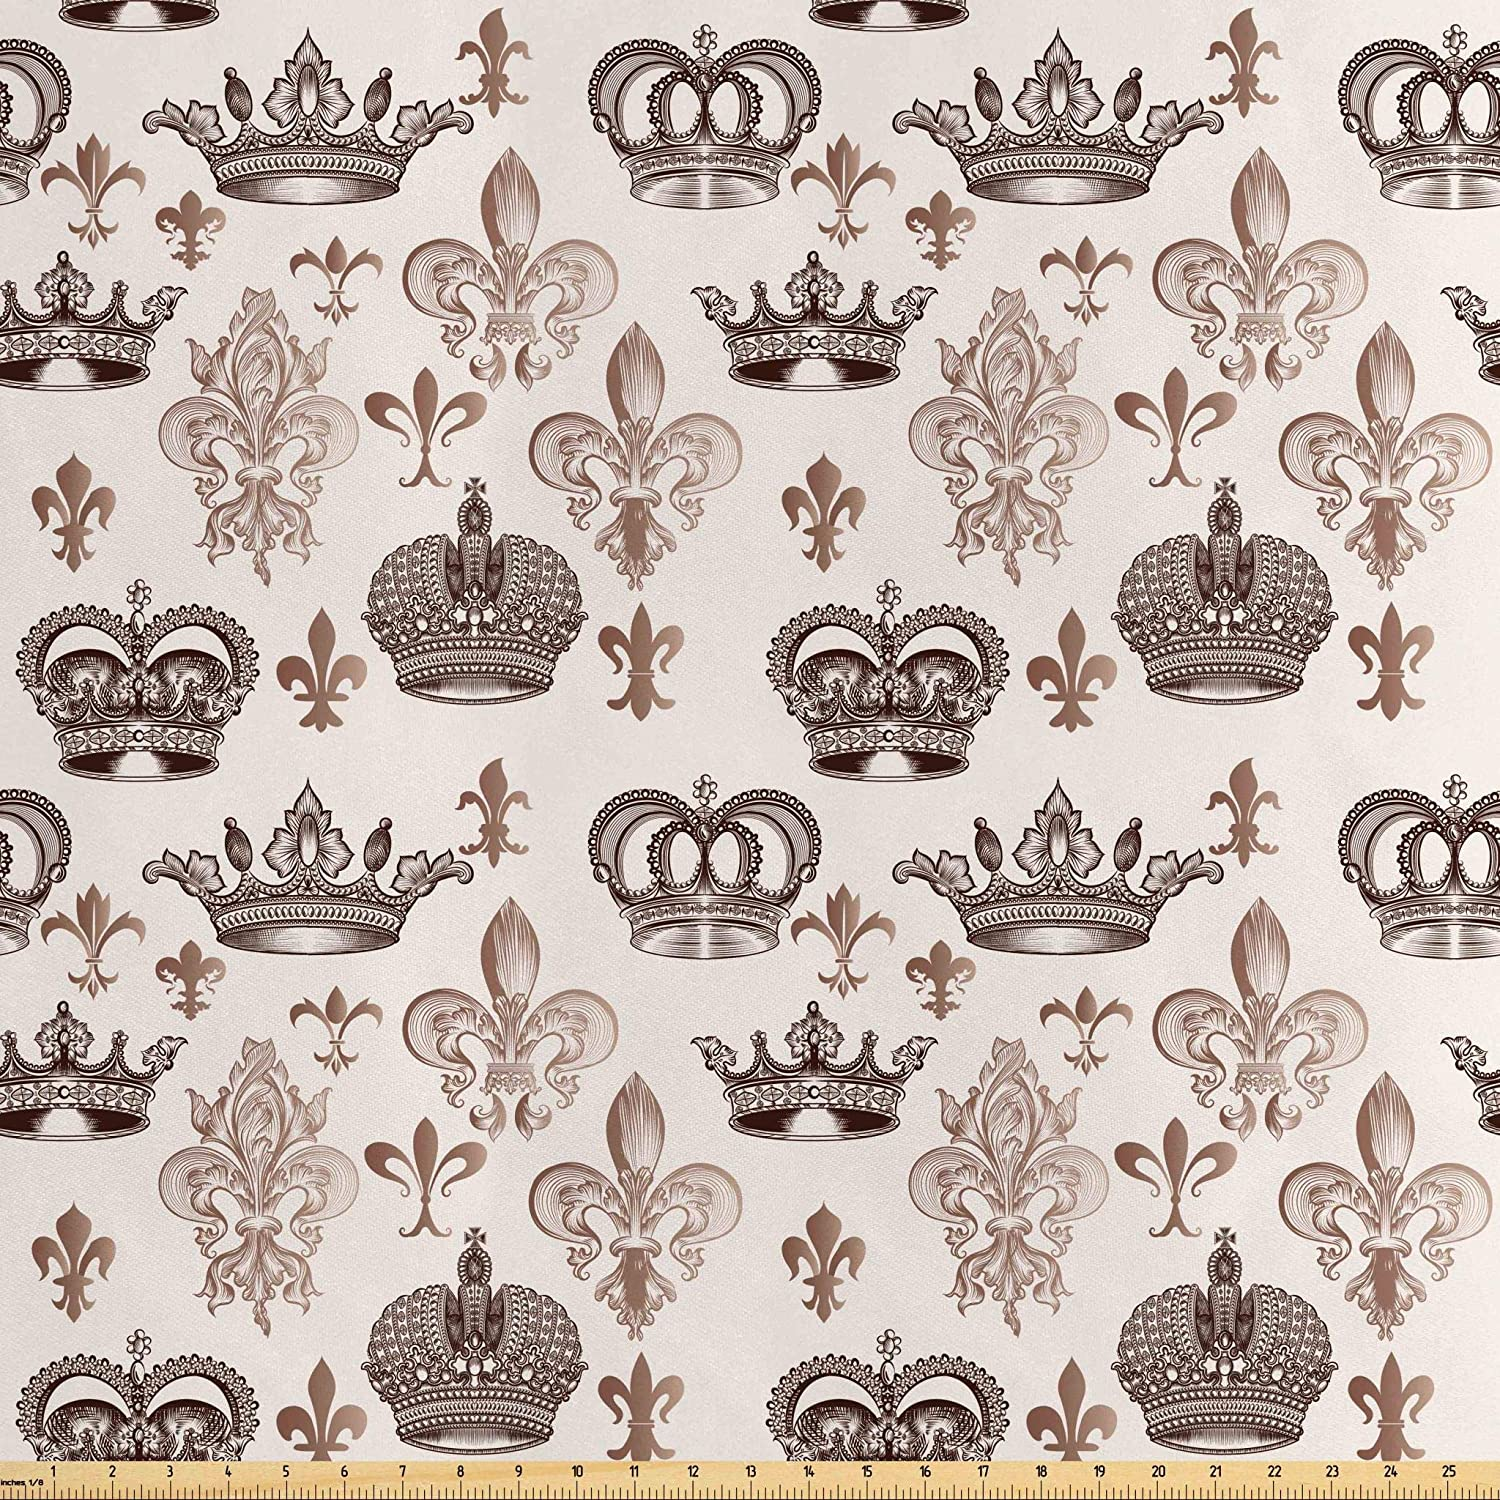 Lunarable Fleur De Lis Fabric by The Yard, Crowns and Fleur-de-Lis Shapes in Engraved Style Fame Symbolic Artwork Print, Decorative Satin Fabric for Home Textiles and Crafts, 1 Yard, Beige Tan